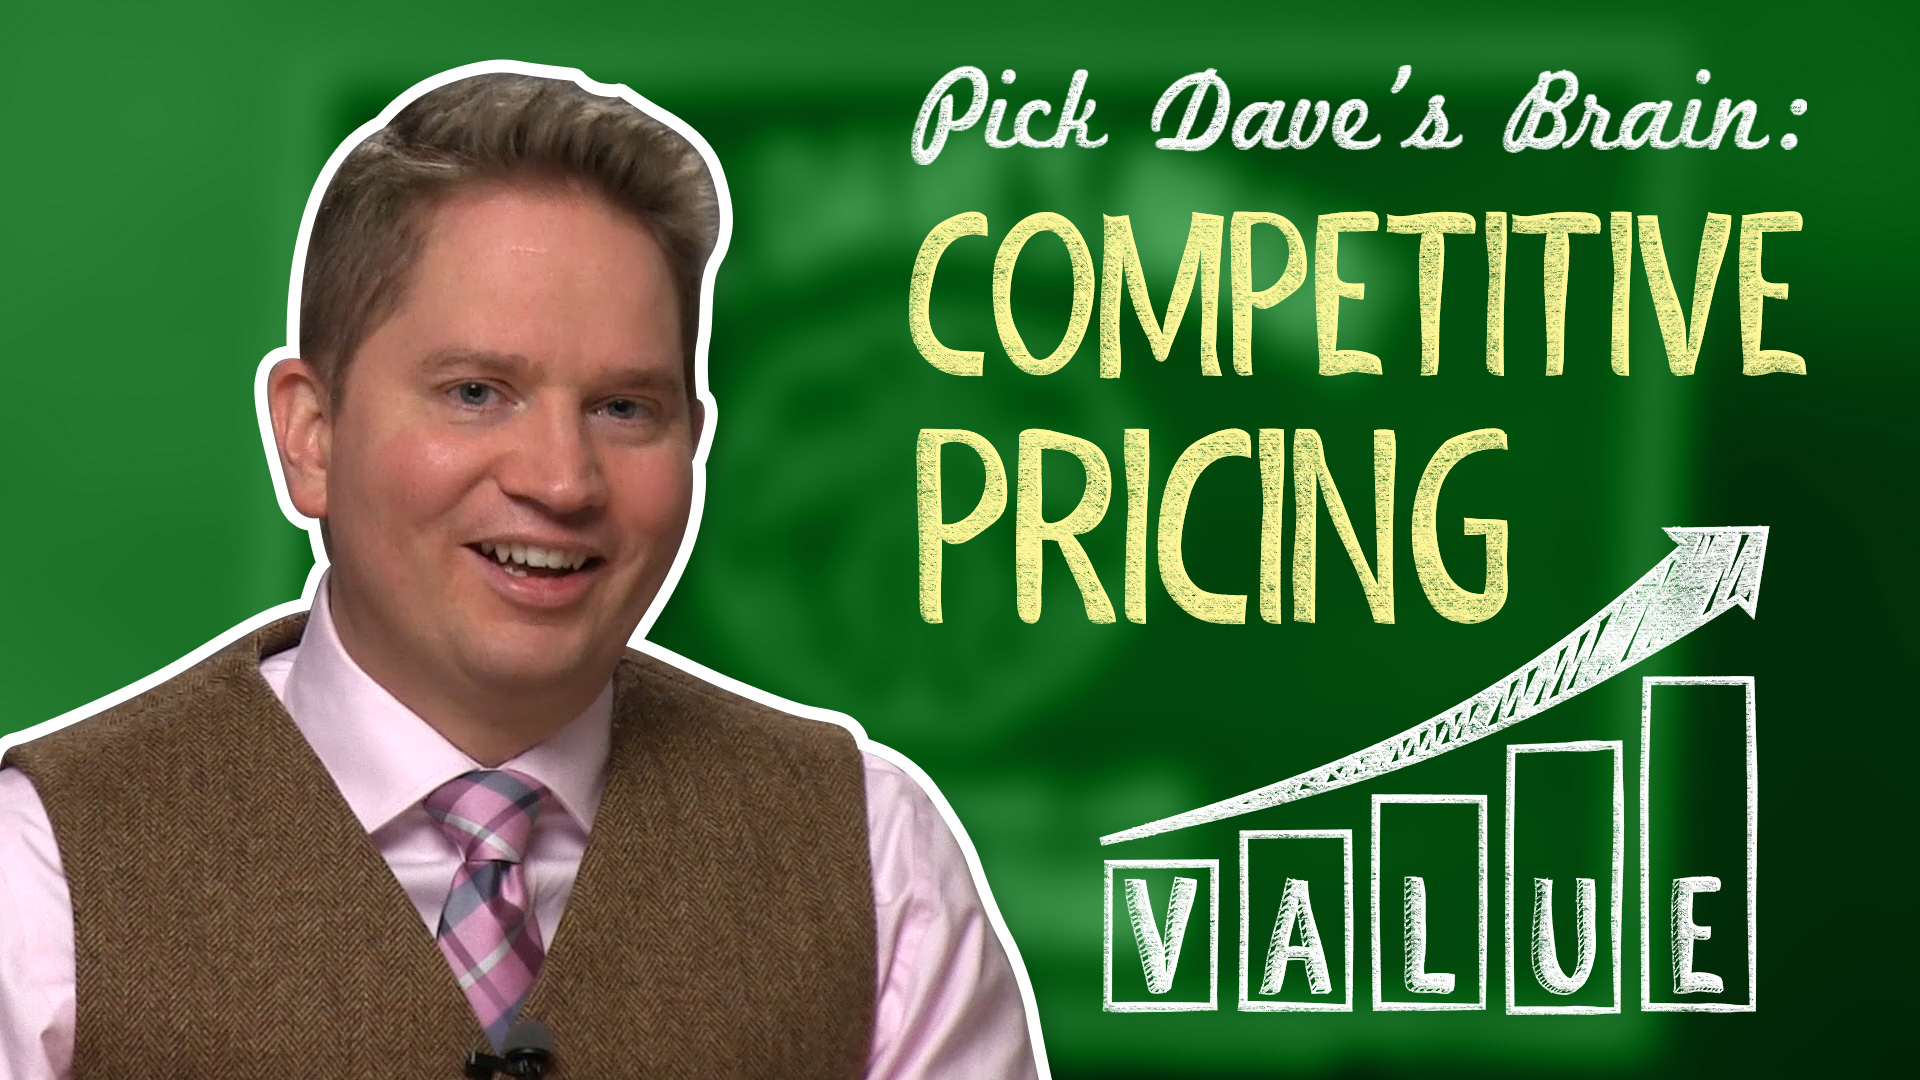 Want to step up your game? Step up your price! – Pick Dave's Brain